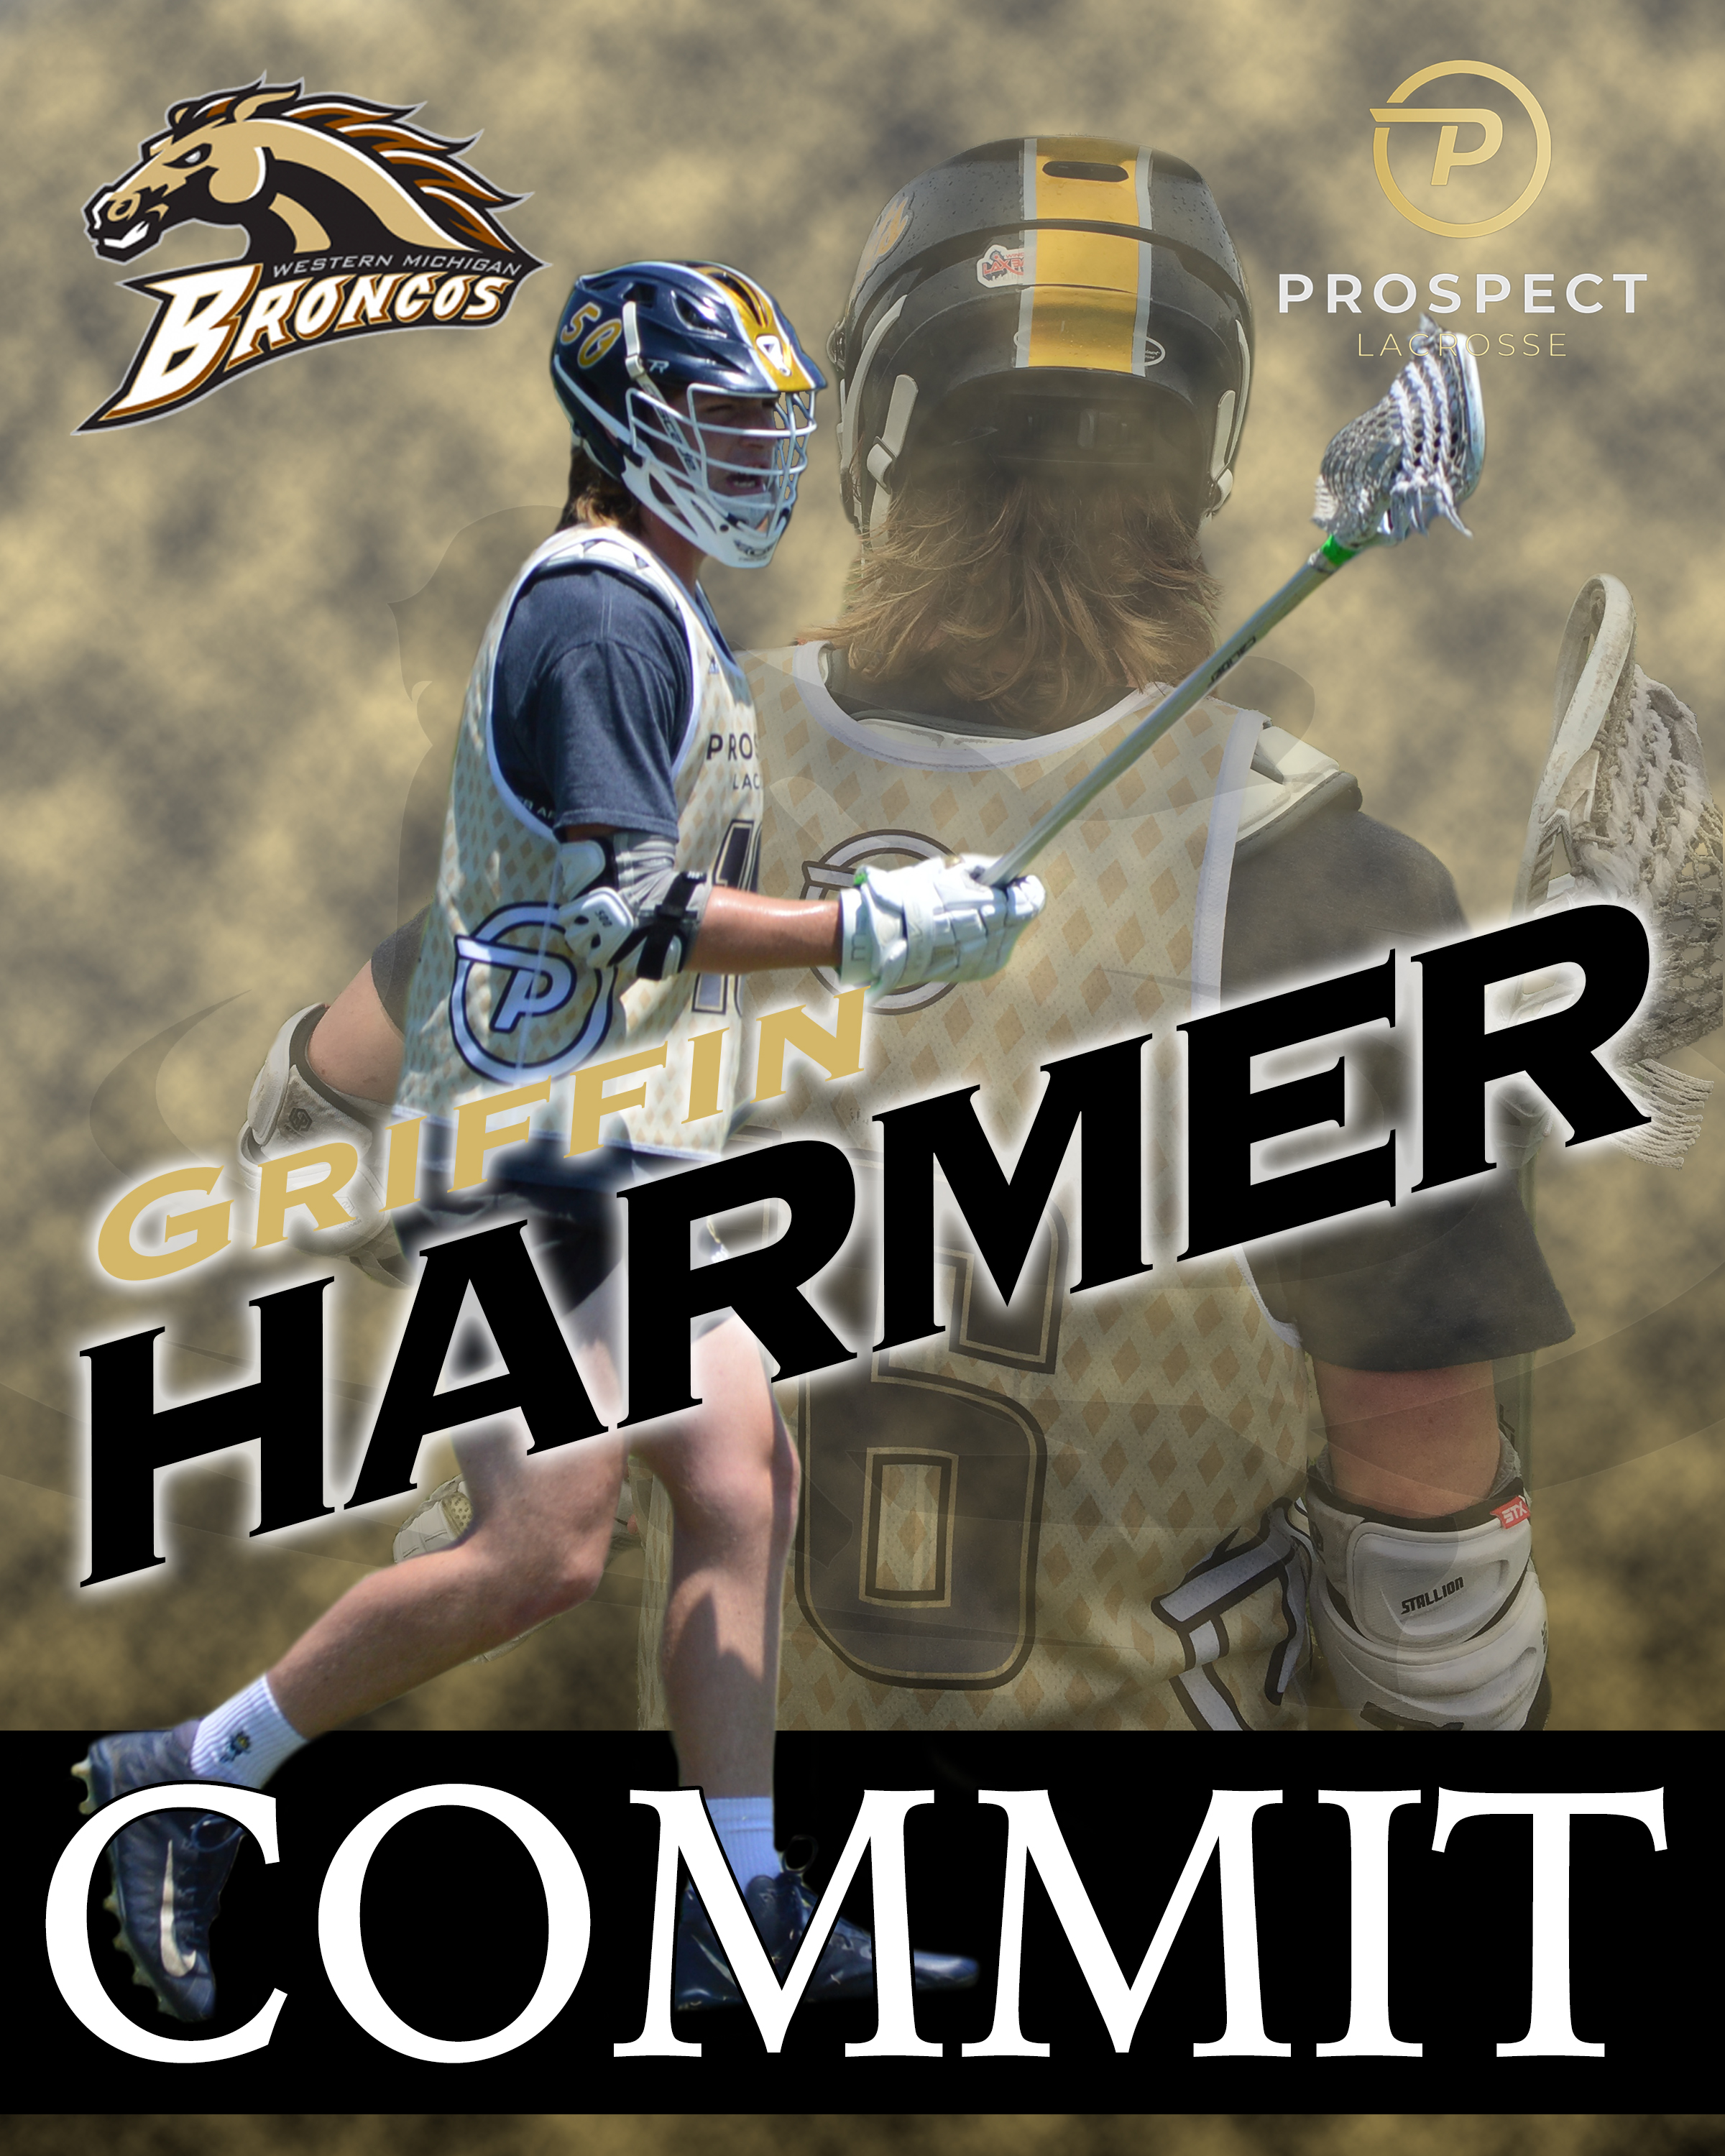 Griffin Harmer Commit